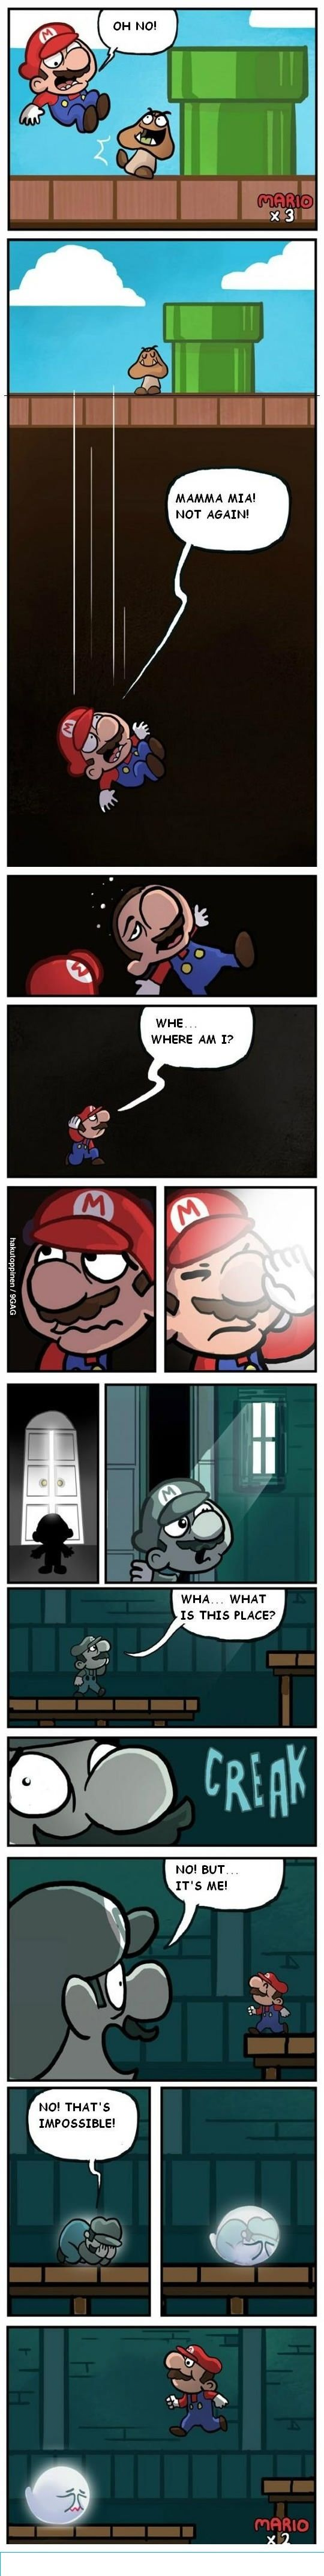 How Boos are made--That would be horrid if every time you ever died in the game you a boo was added. First time through, you'd never survive a boo level. ...Ever.